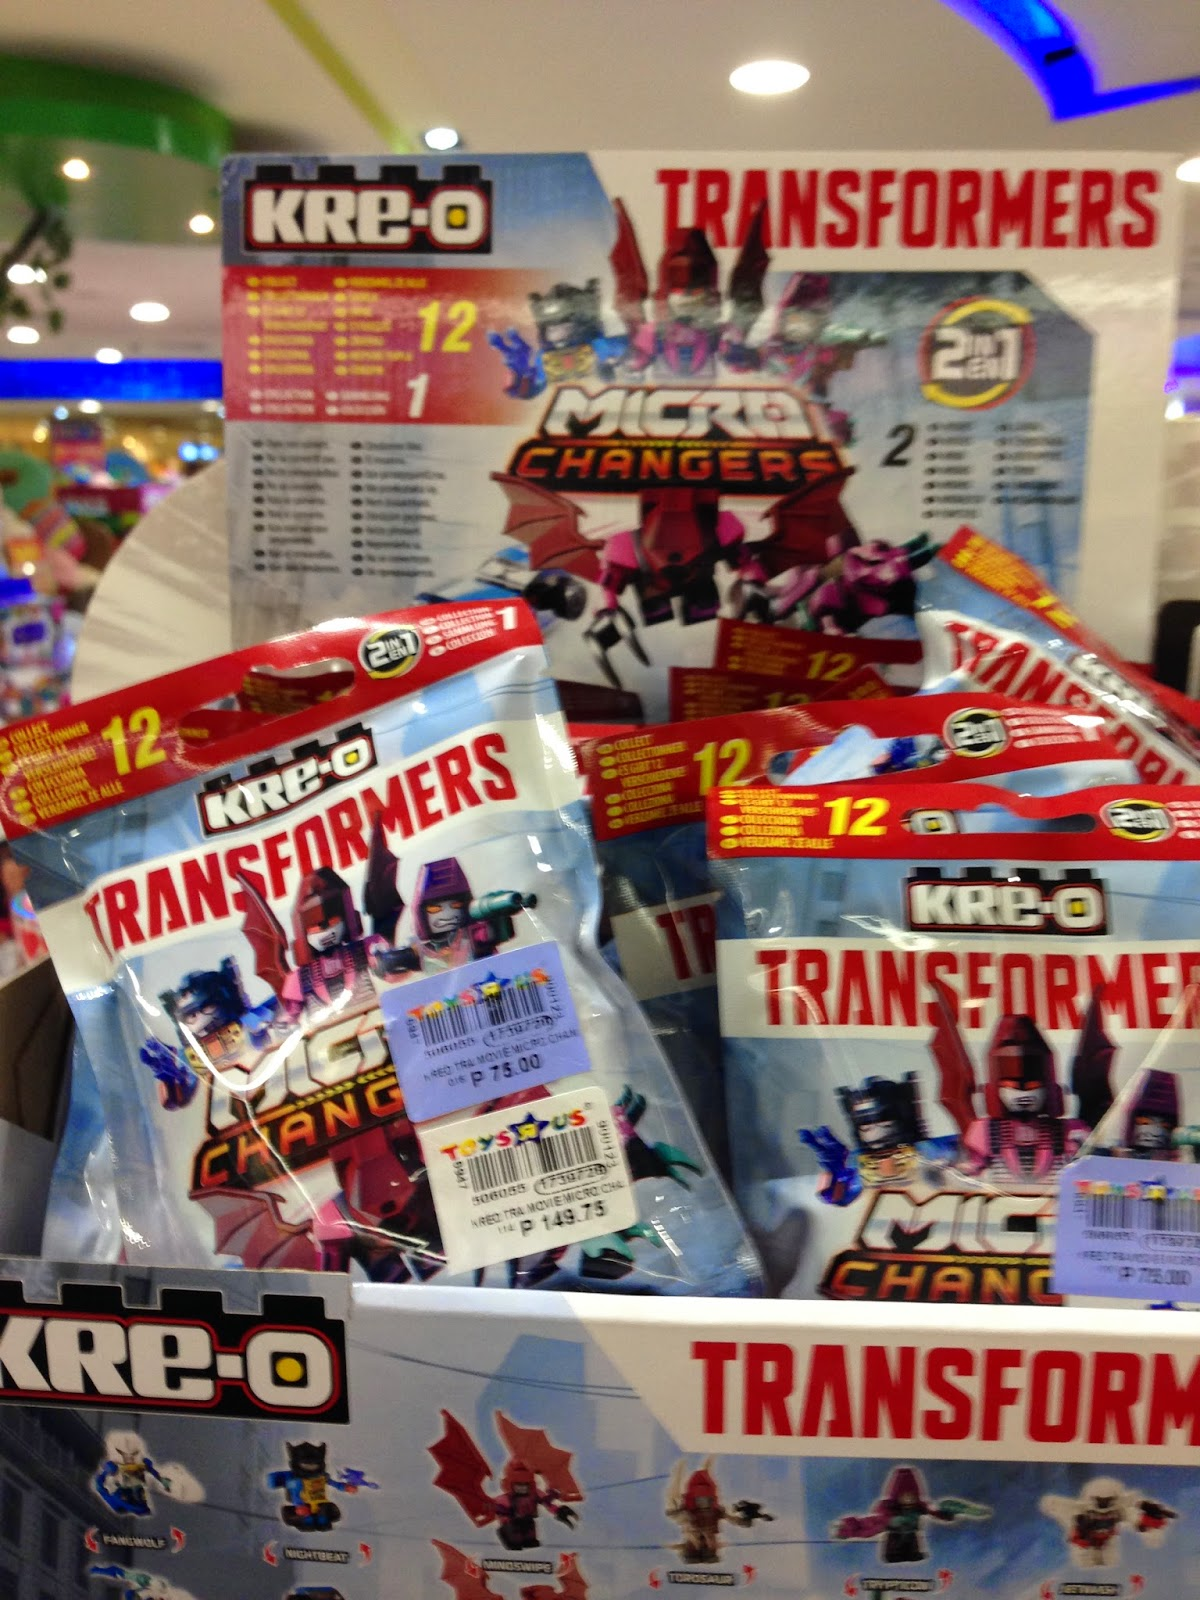 Toy Sale in Manila, Philippines 2015 : Kre-o Transformers Micro Changers Surprise Toys on SALE